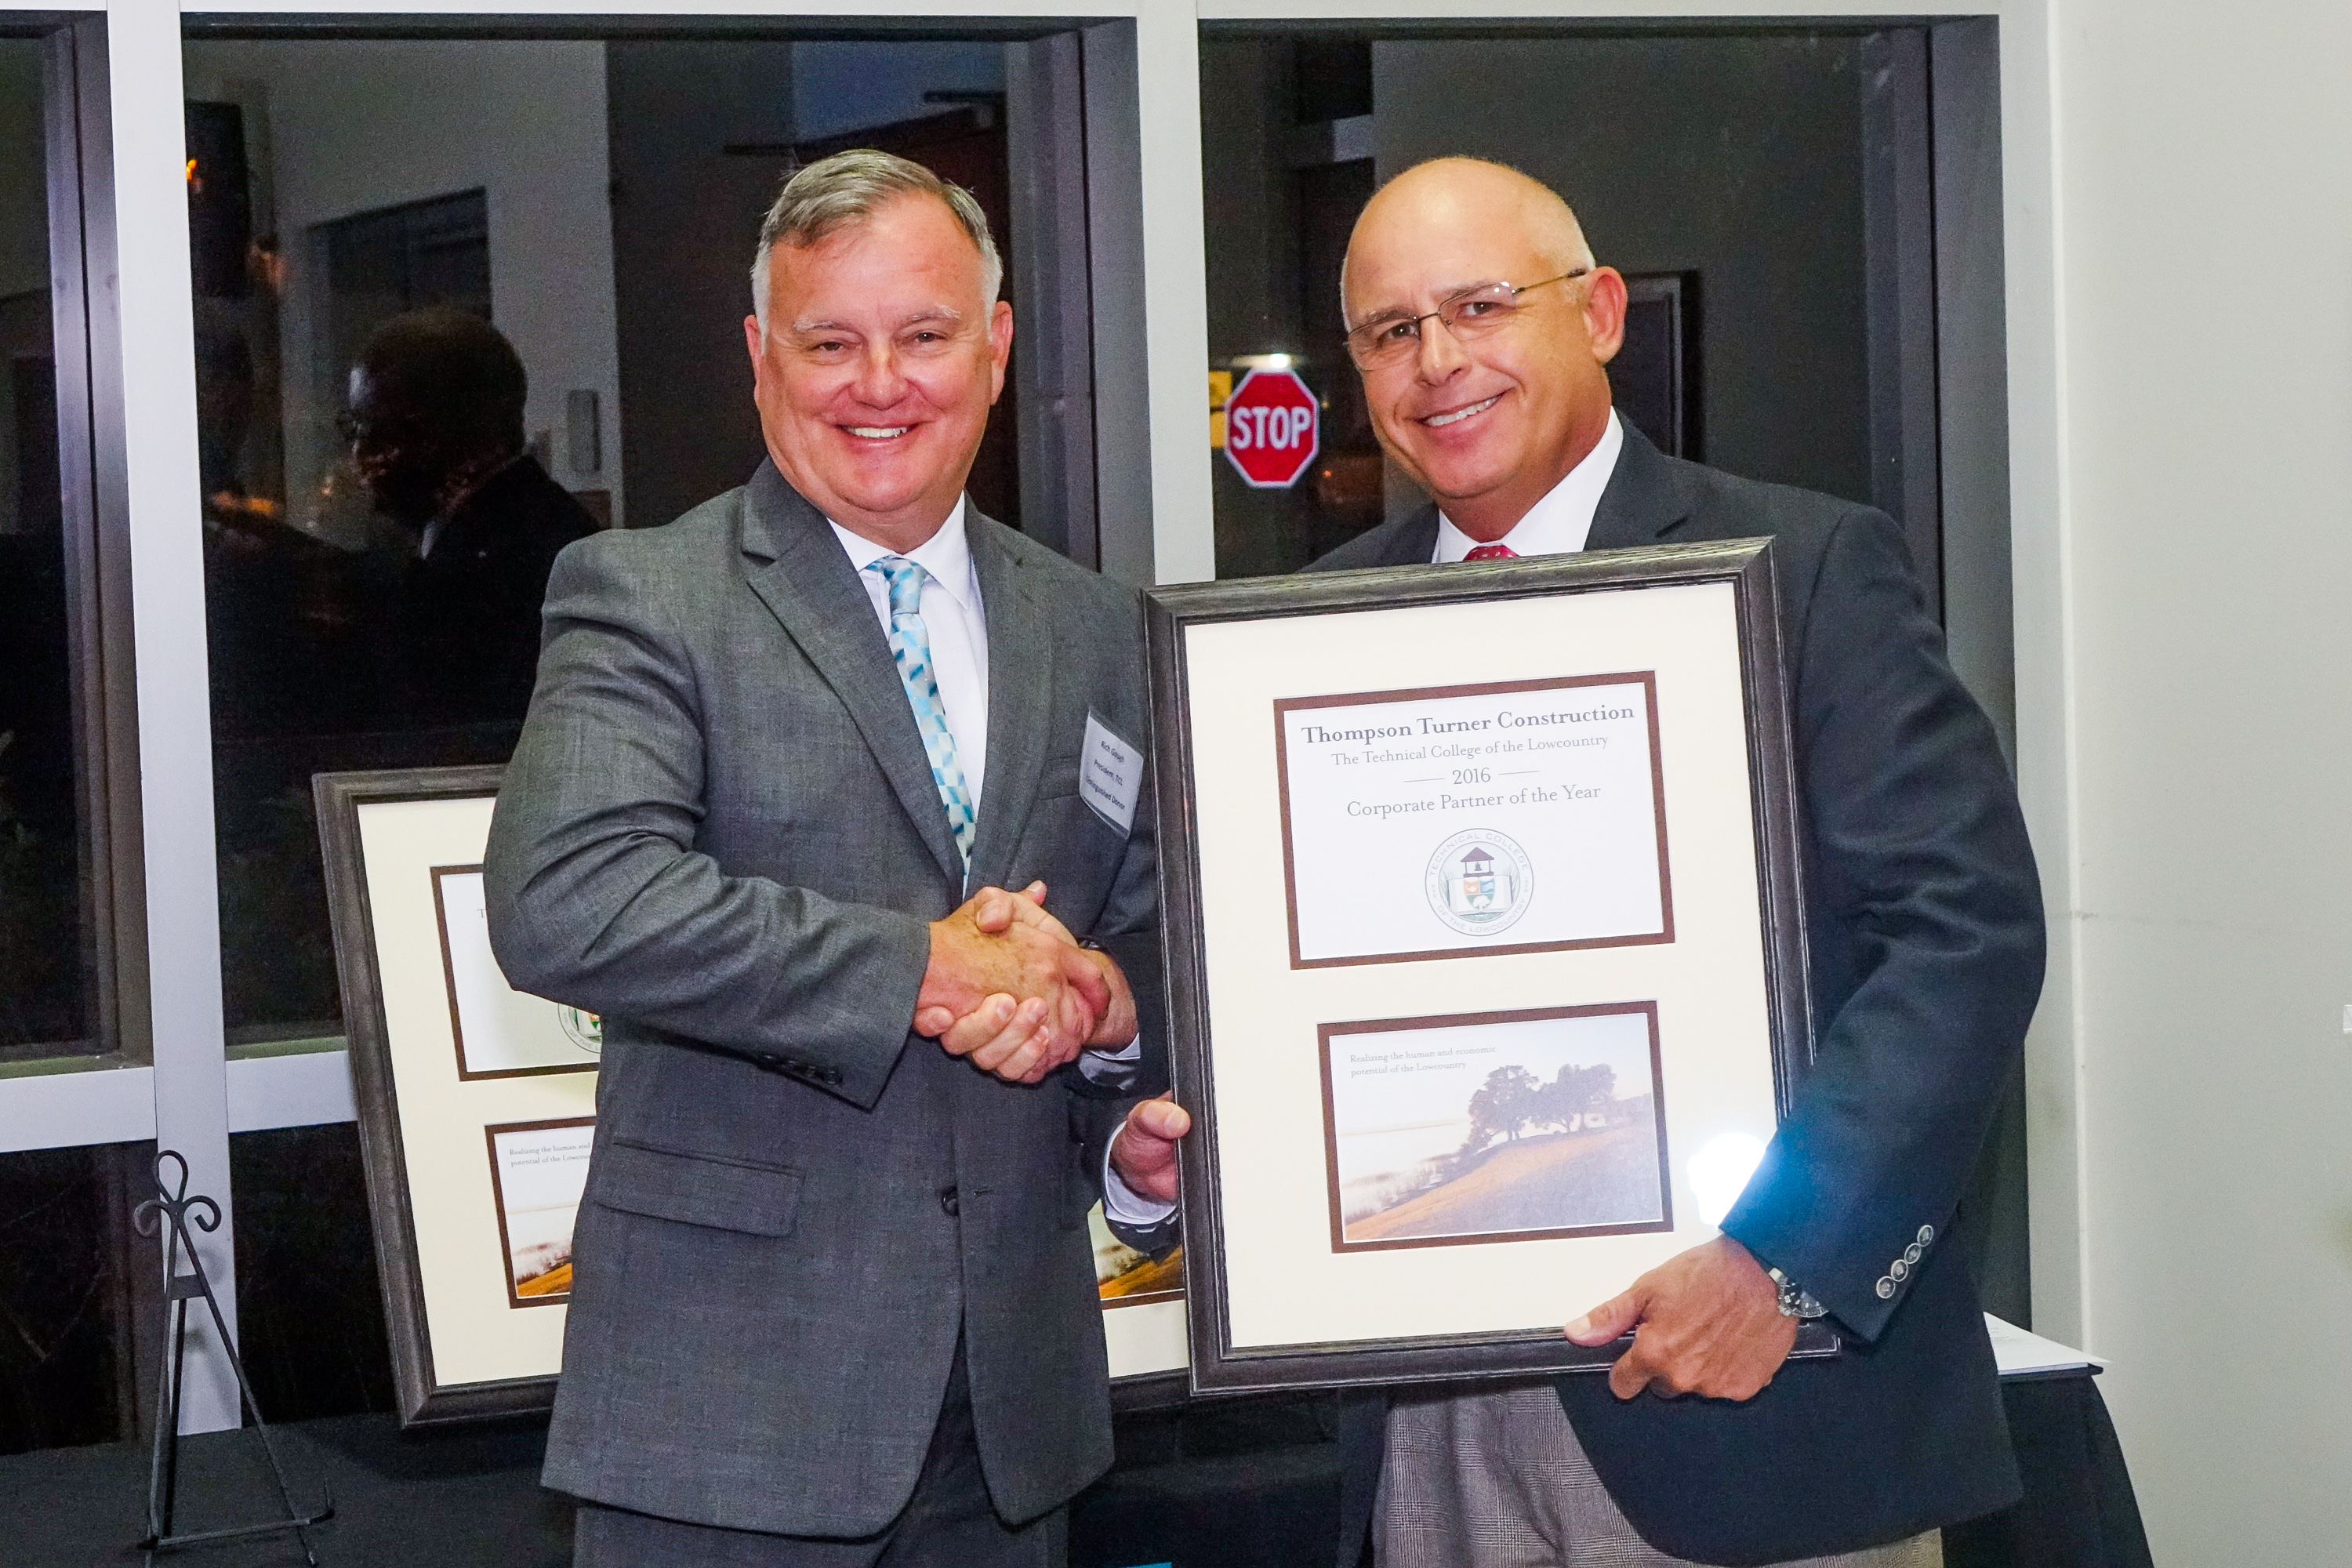 Photo-Thompson Turner Construction-TCL Corporate Partner of the Year (Mr. Hal Turner, pictured)